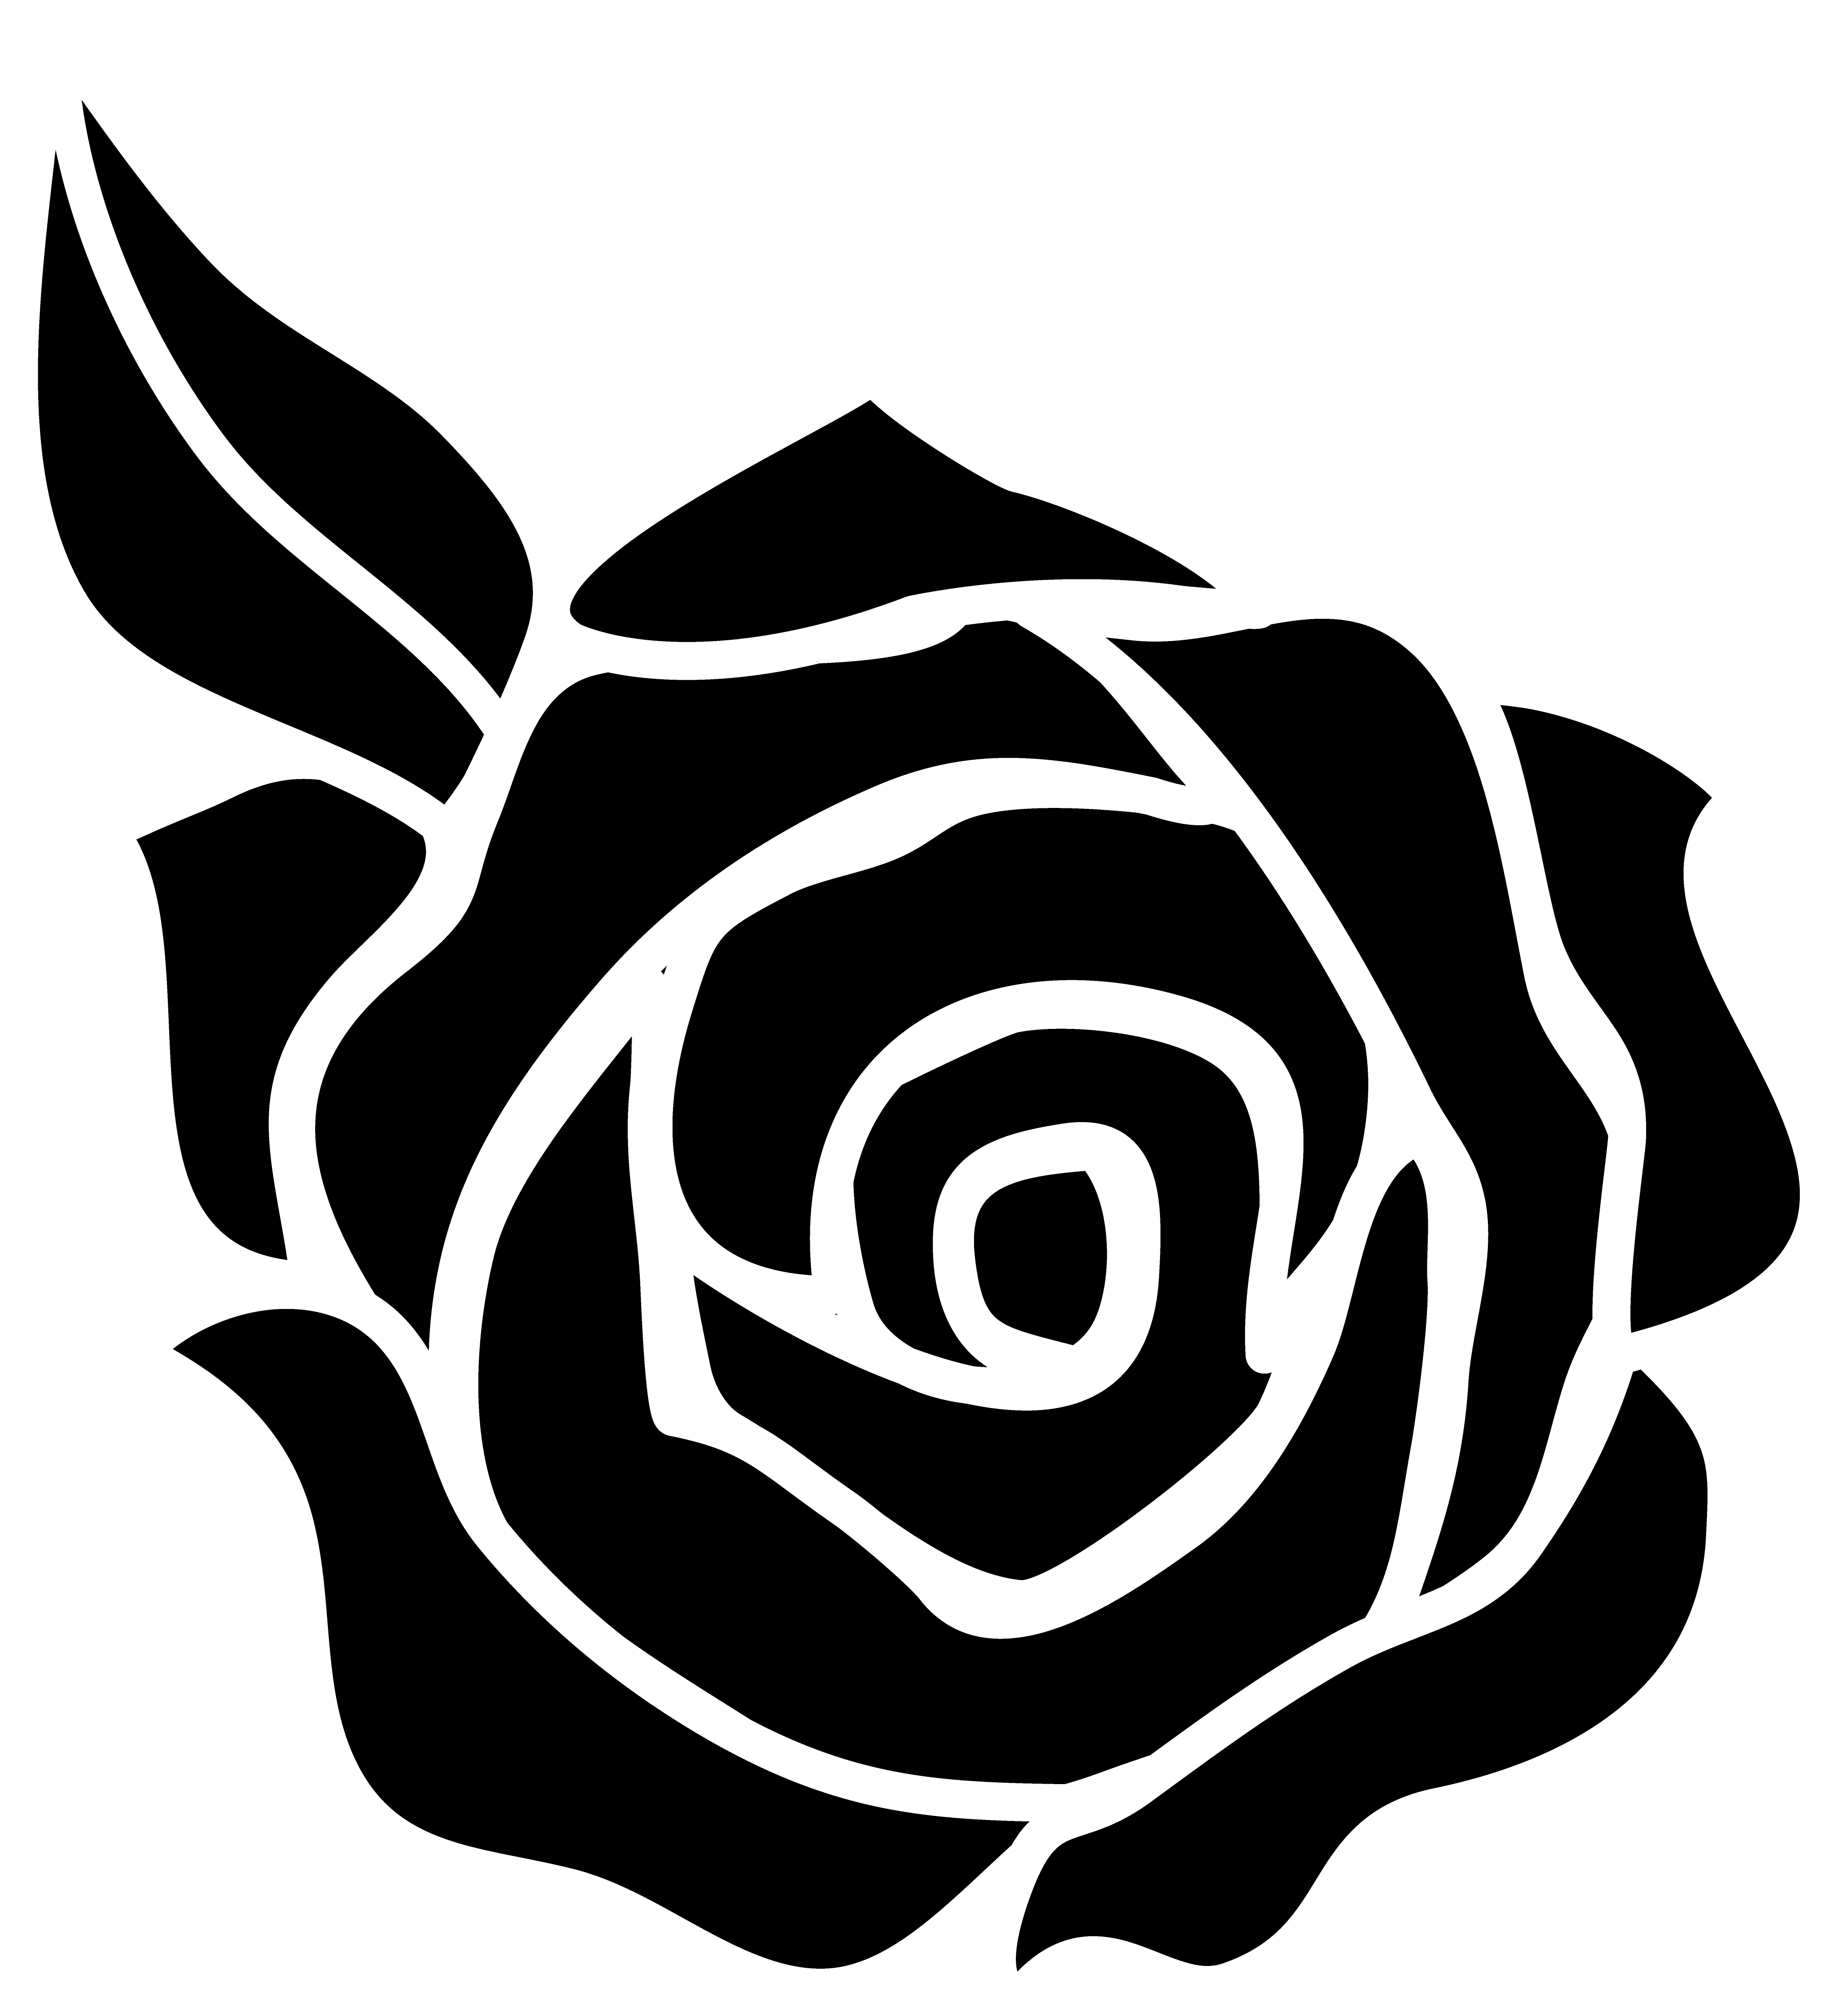 Rose clipart black and white. Horseshoe vinyl decal cowgirl